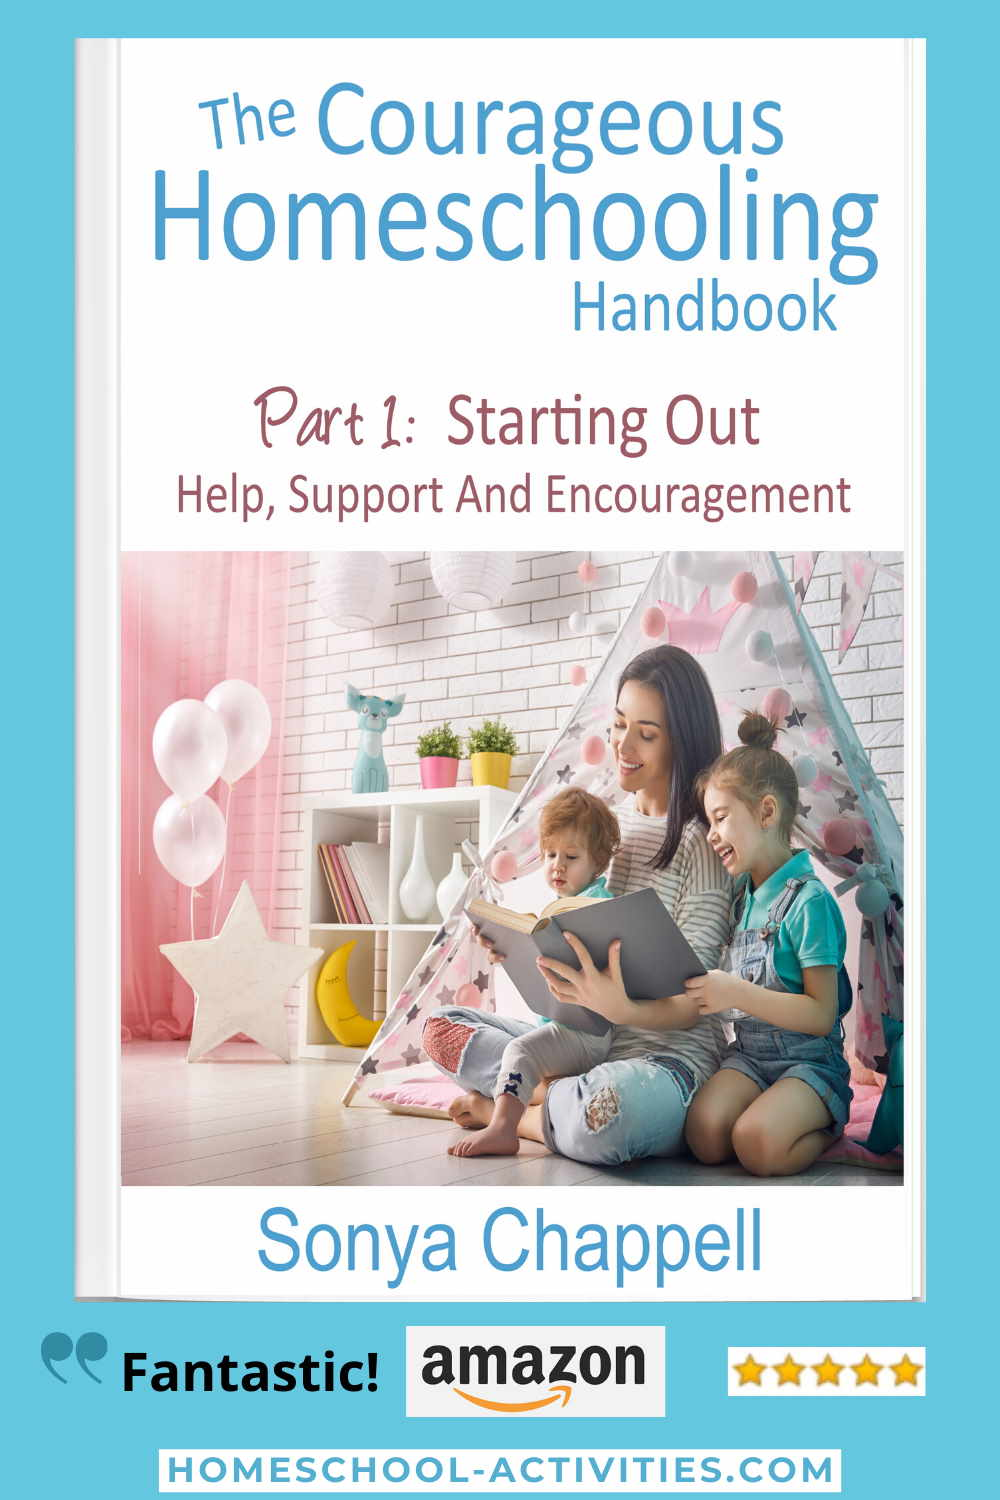 The Courageous Homeschooling Handbook helping homeschoolers starting out